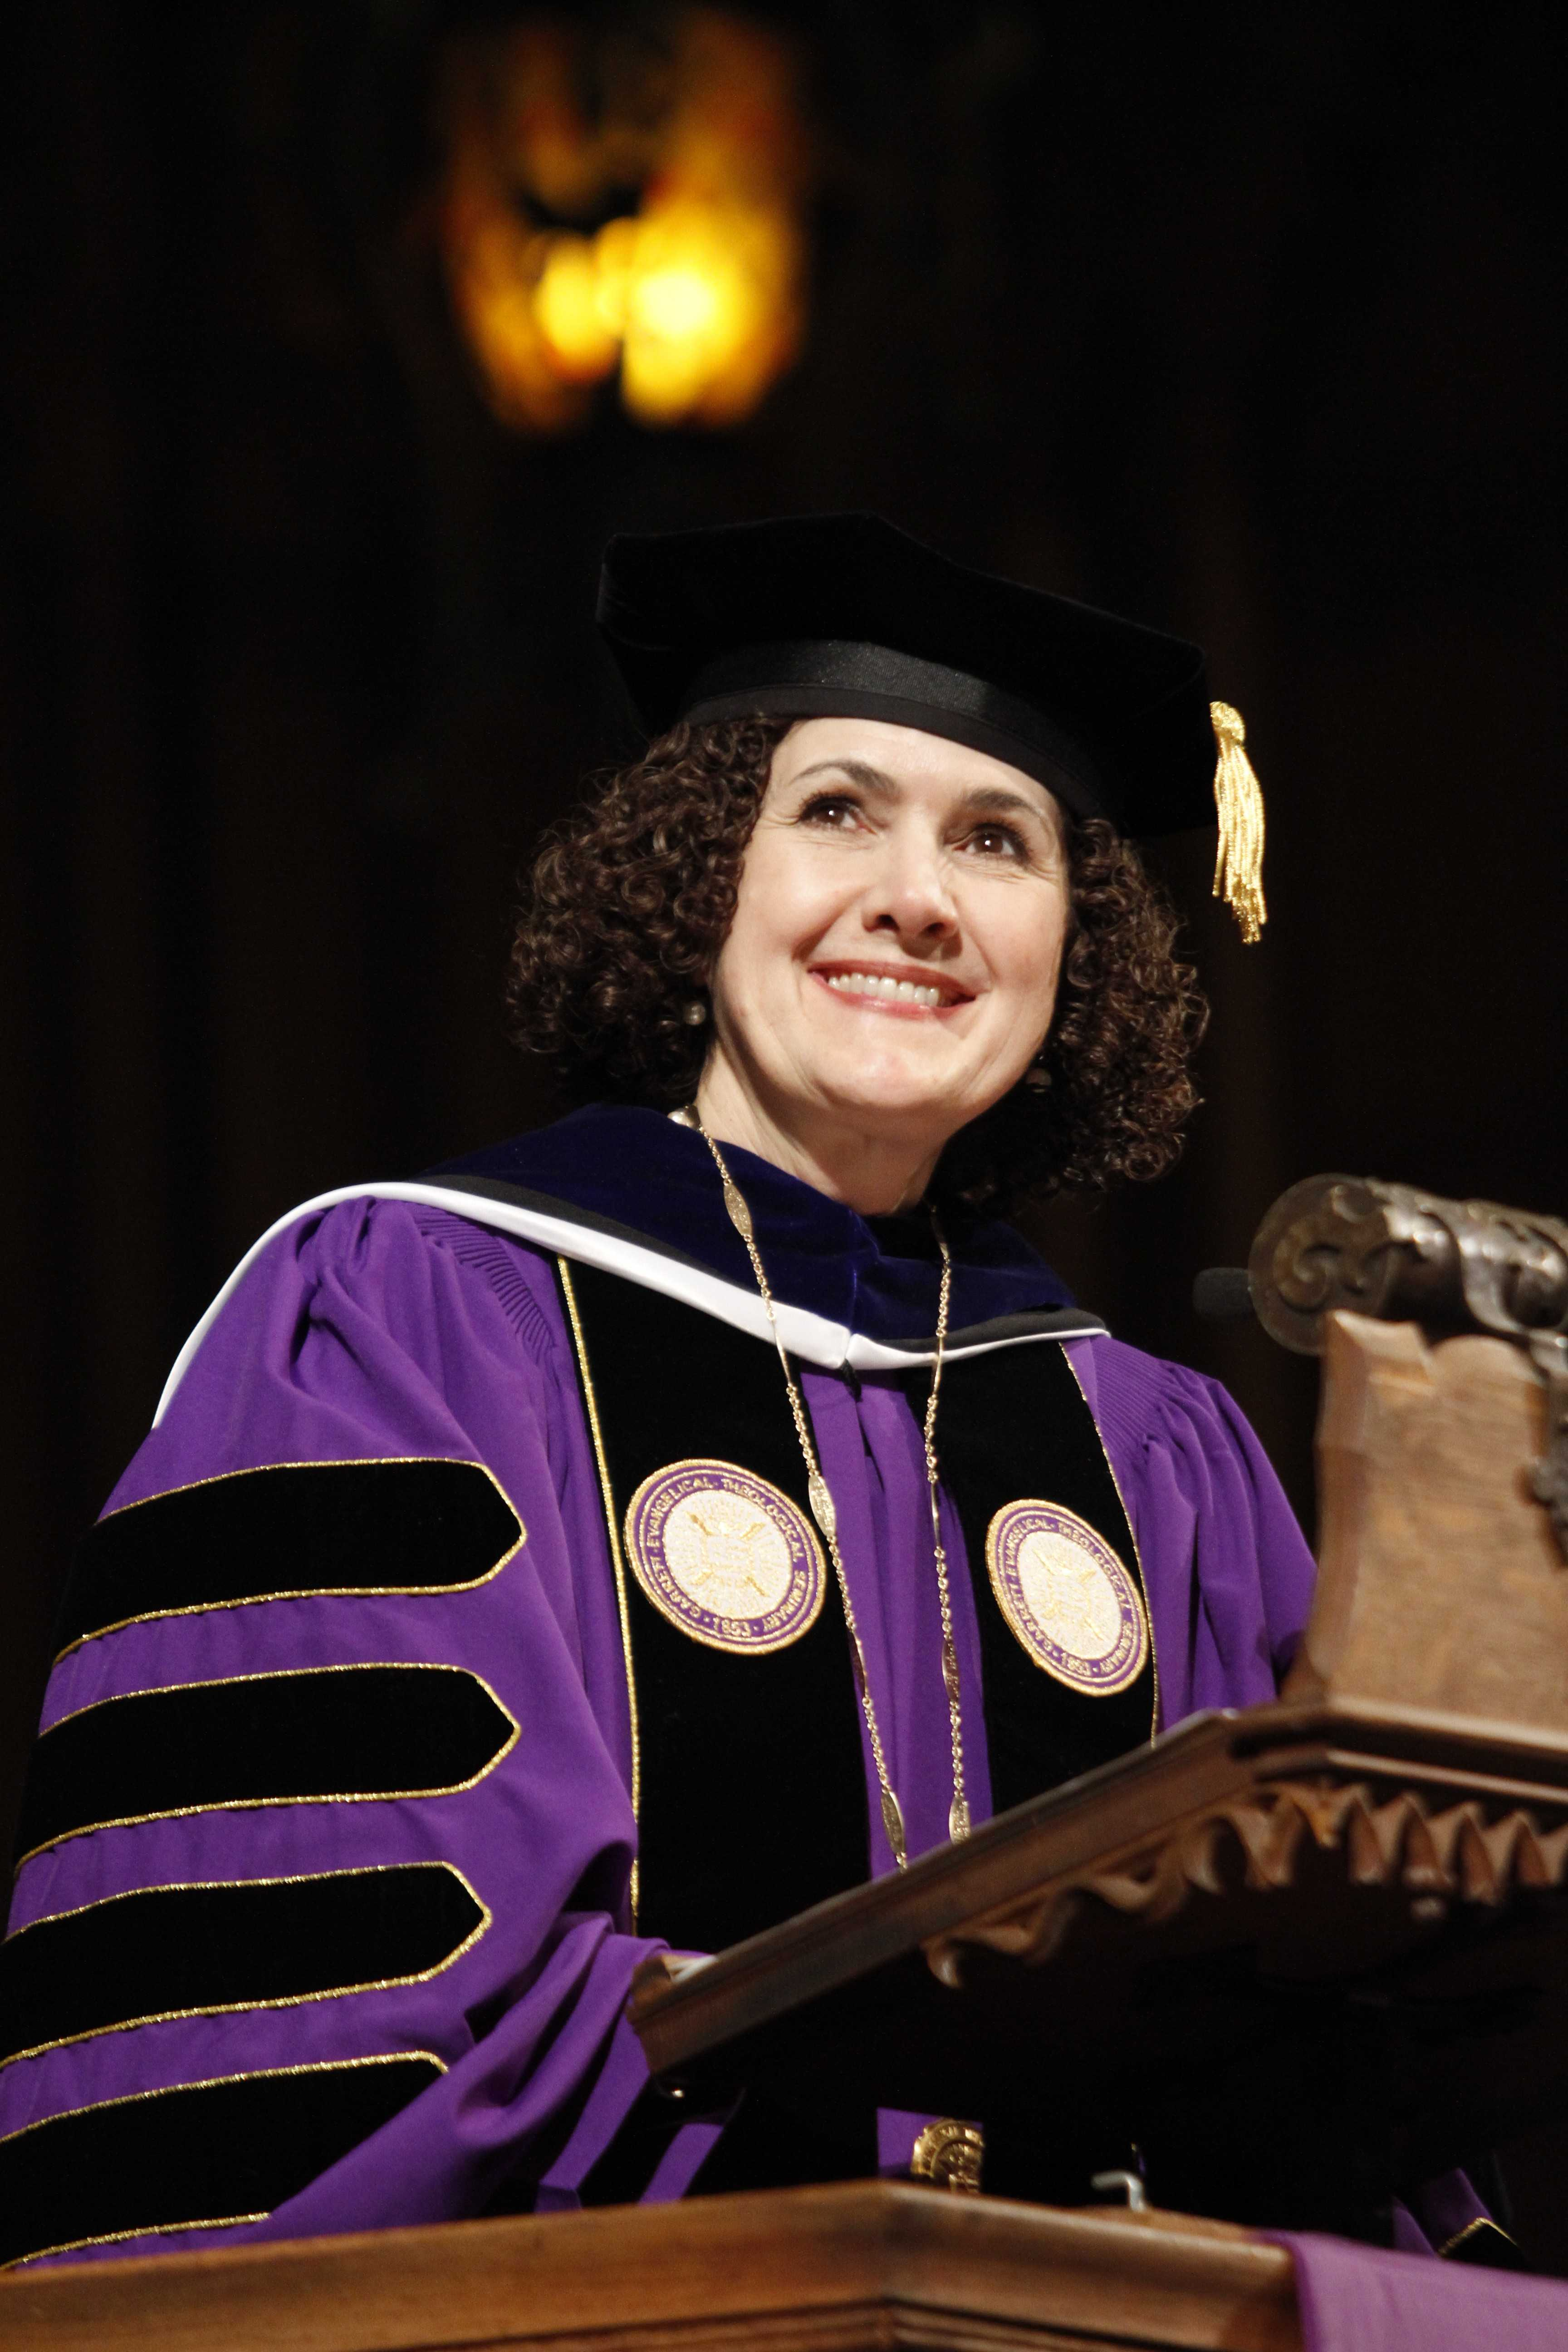 Dr. Lallene Rector was inaugurated Saturday as Garrett-Evangelical Theological Seminary's first female president. Rector previously served as the seminary's vice president for academic affairs and its academic dean.